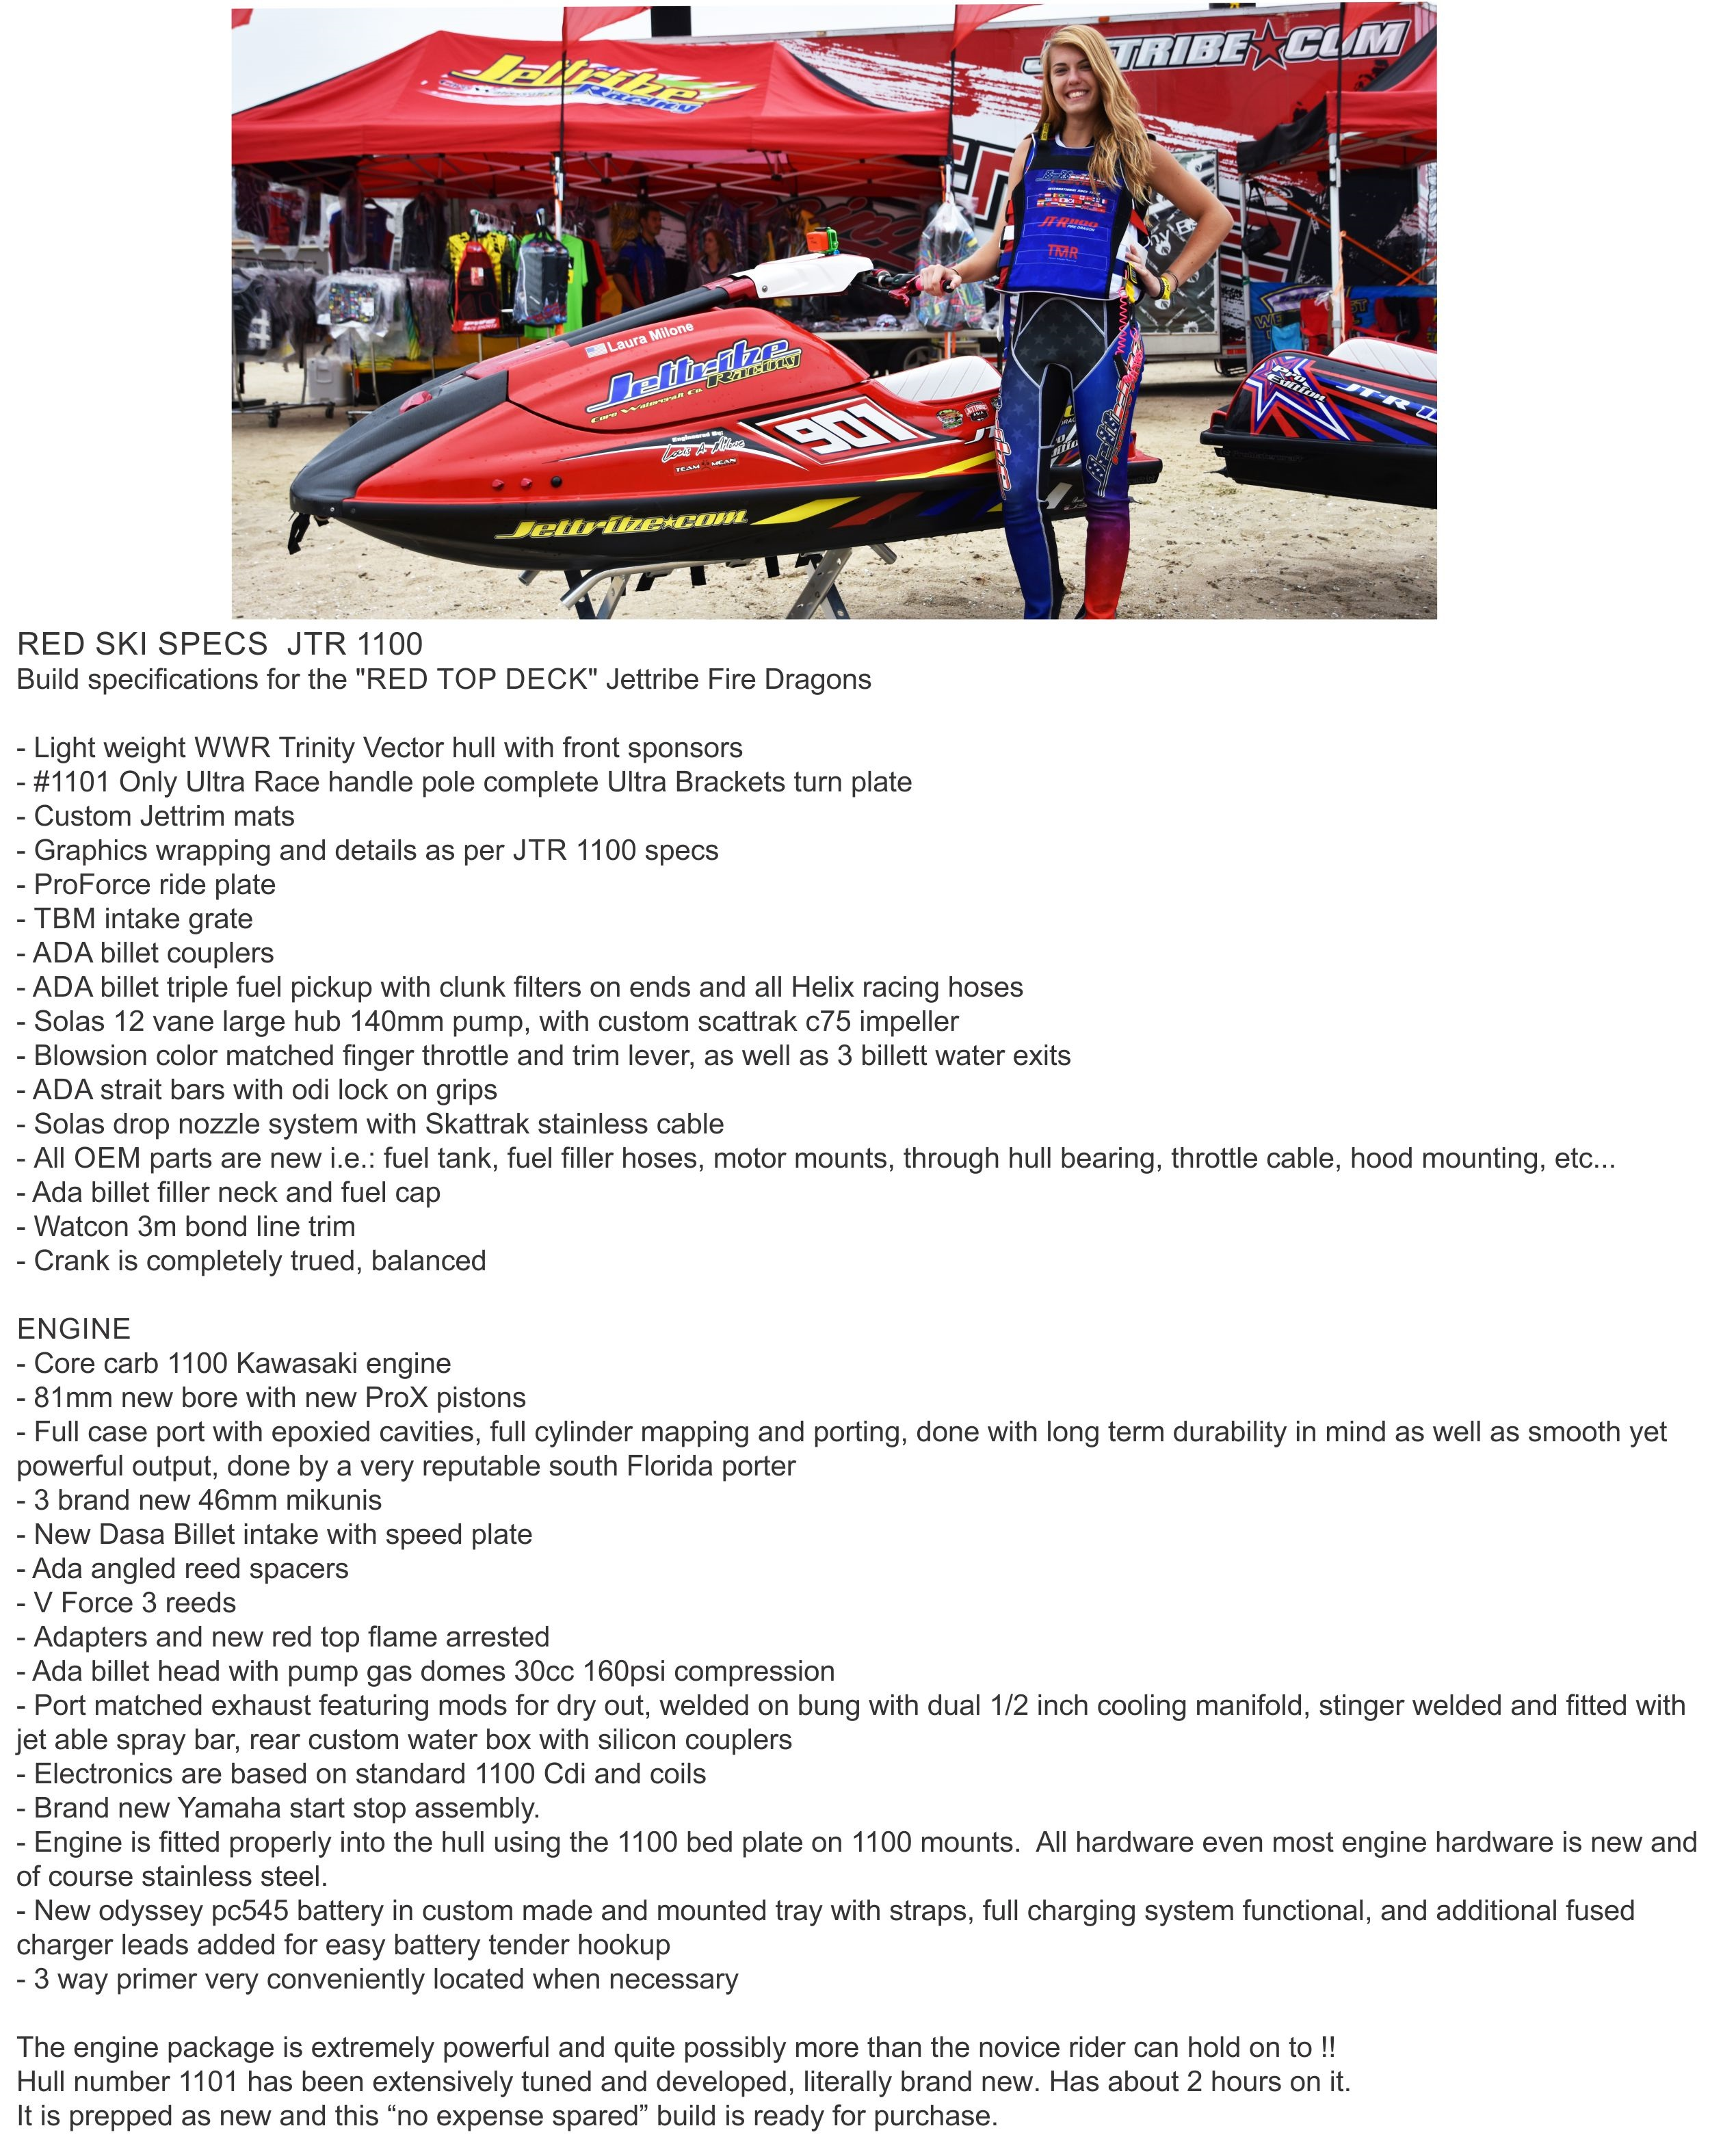 jtr-1100-fire-dragon-spec-sheet-final-jpg-website1.jpg